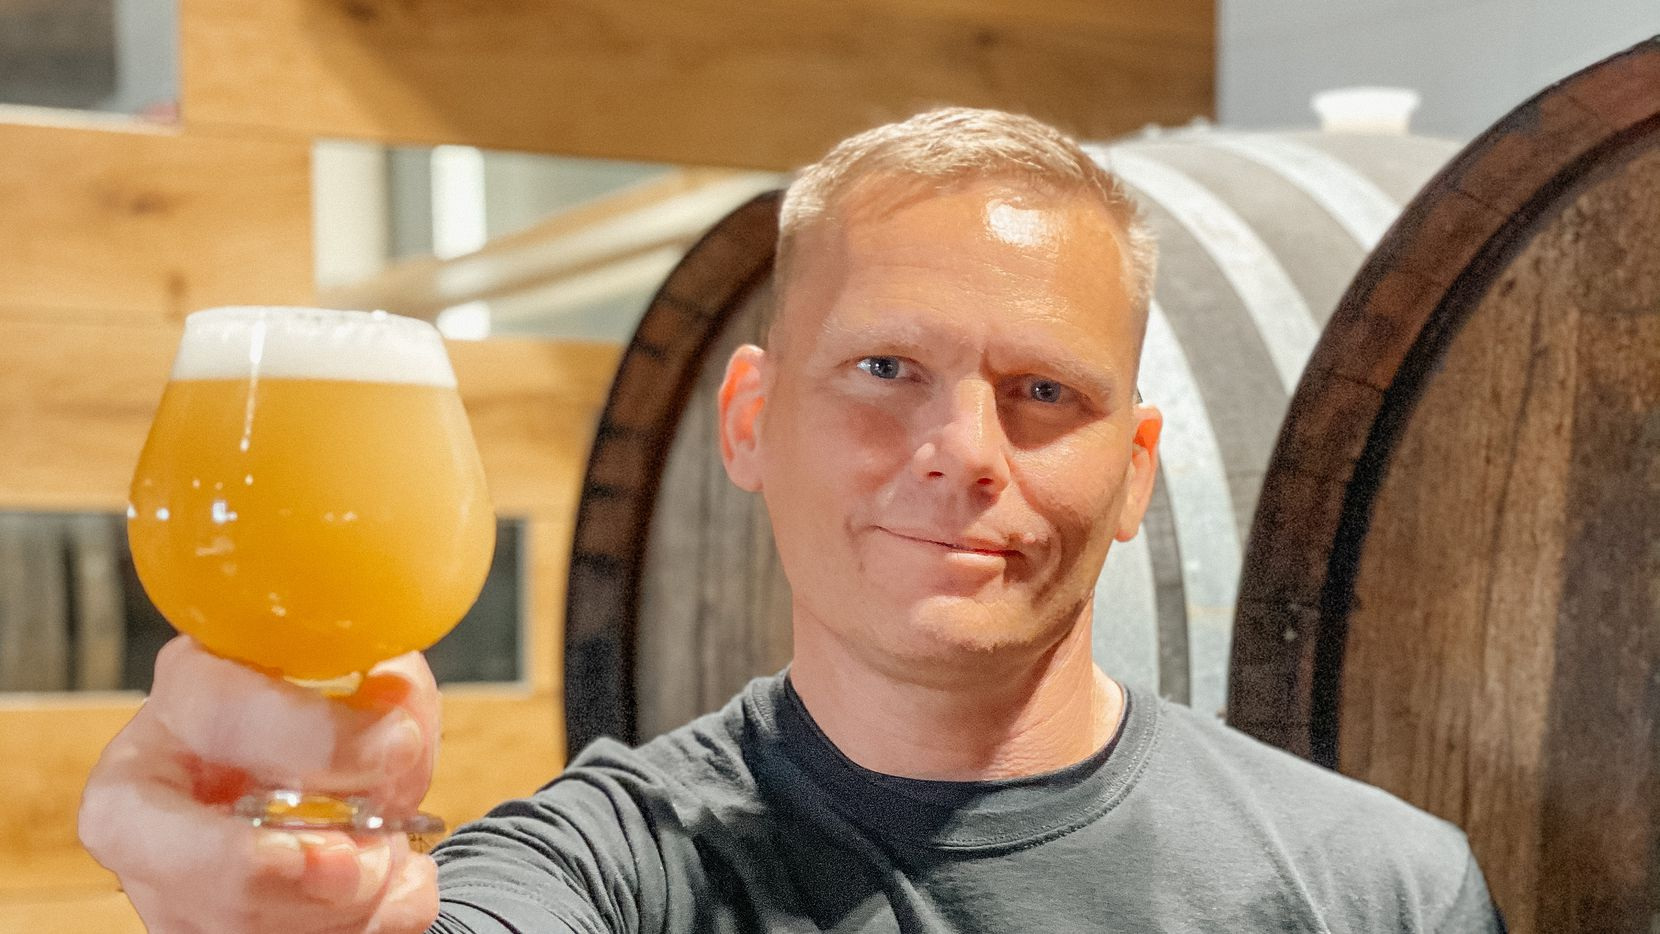 Whole Foods Market Brewing Company is run by Master Brewer, Chris Shelton.